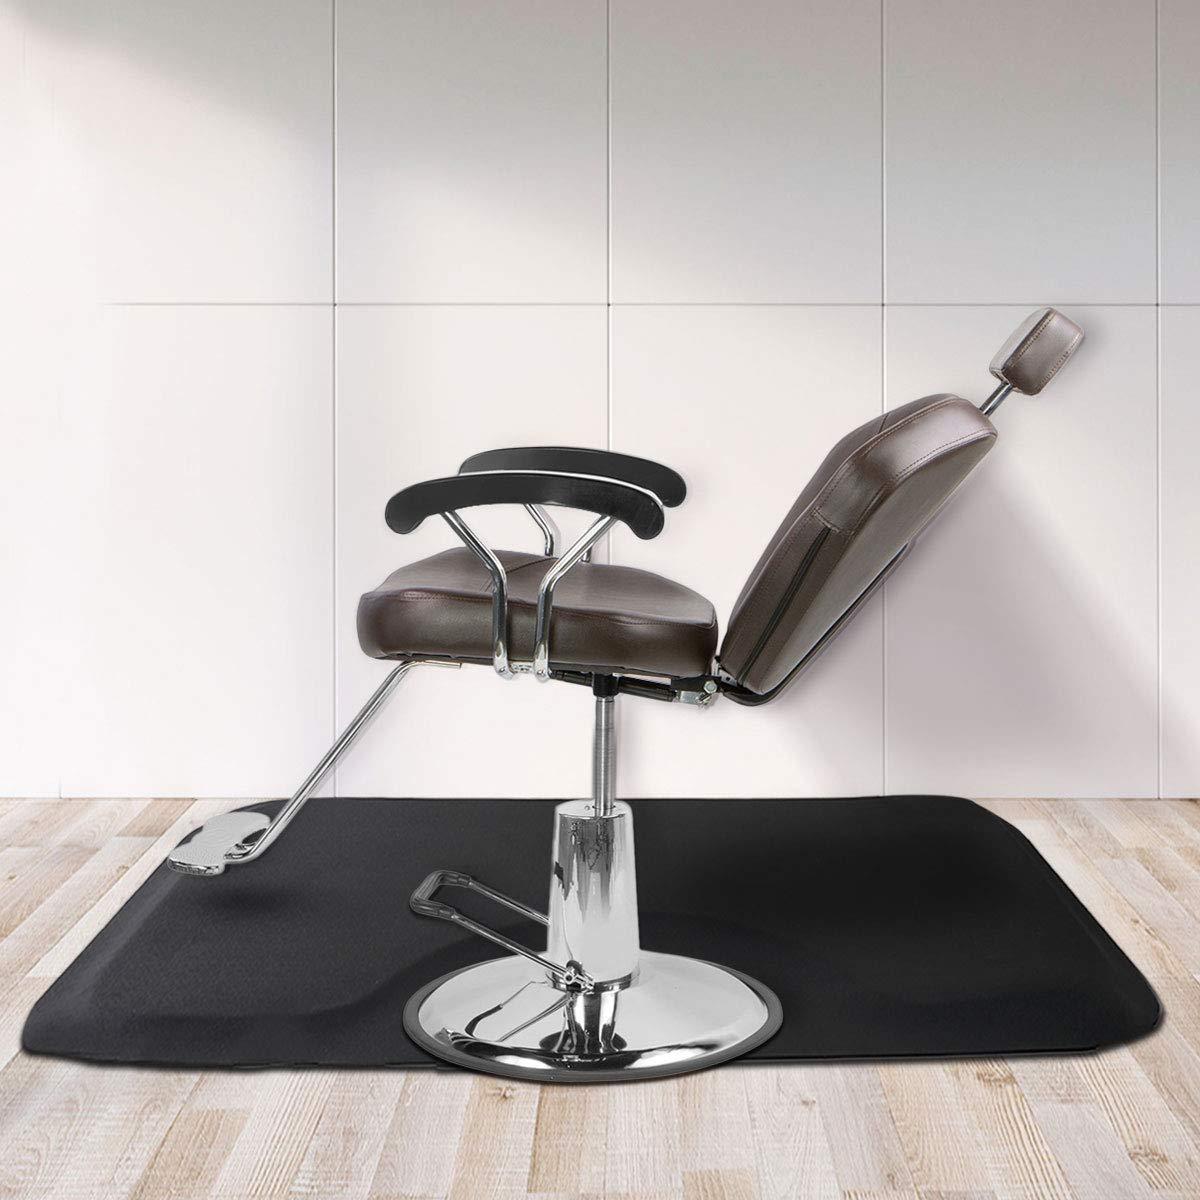 Tobbi Salon Barber Chair Mat 3 ft. x 5 ft. -1/2''Thick Anti Fatigue Beauty Floor Mat Black by TOBBI